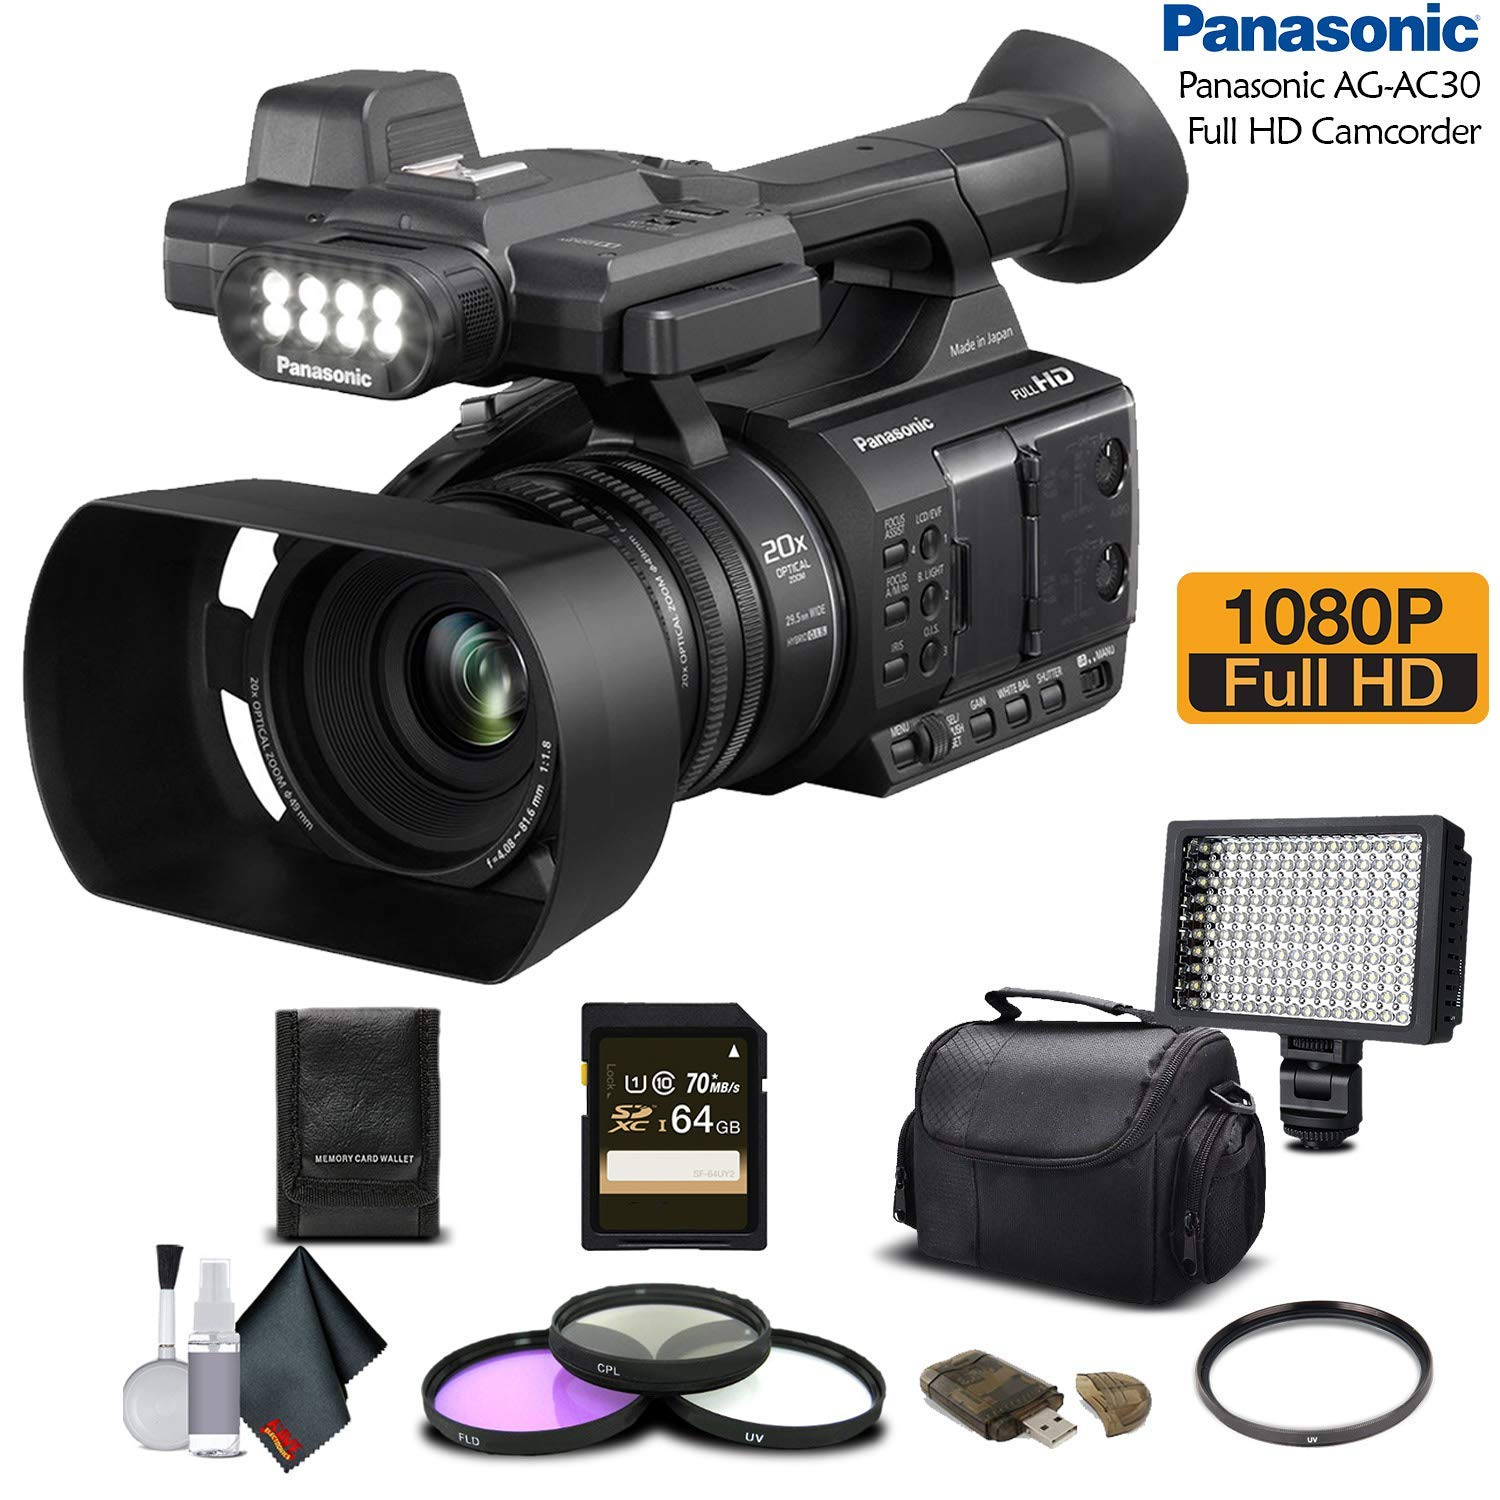 Panasonic AG-AC30 Full HD Camcorder (AG-AC30PJ) with 64GB Memory Card, LED Light, Case, Telephoto Lens, and More - Advanced Bundle by Panasonic